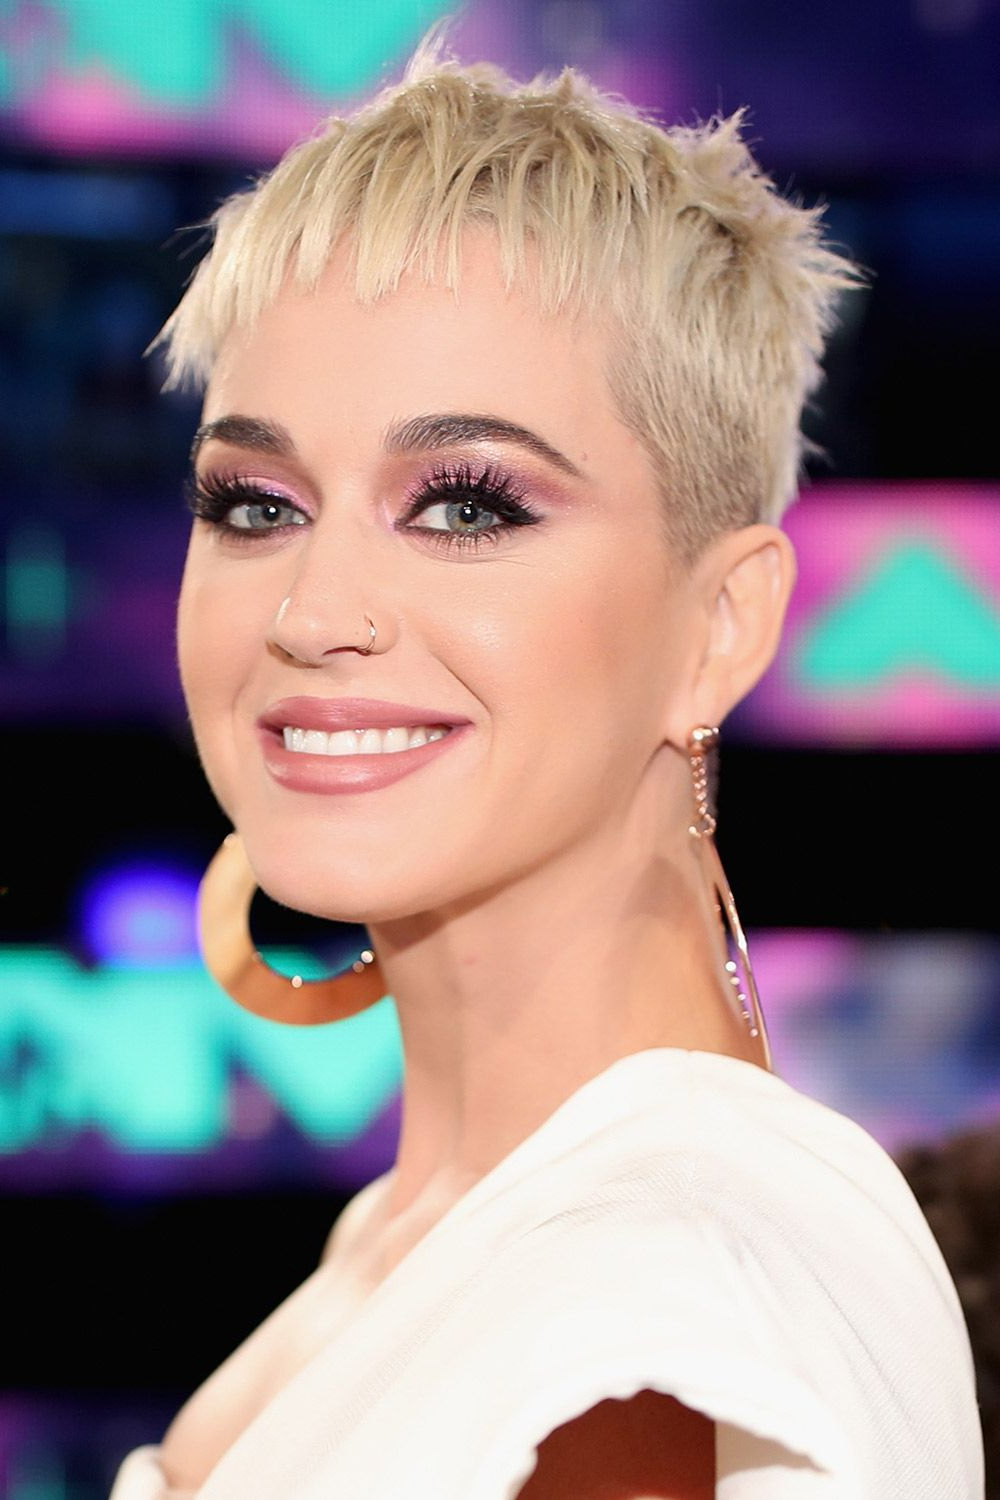 65 Best Short Hairstyles, Haircuts, And Short Hair Ideas For 2018 Regarding Cute Celebrity Short Haircuts (Gallery 6 of 25)